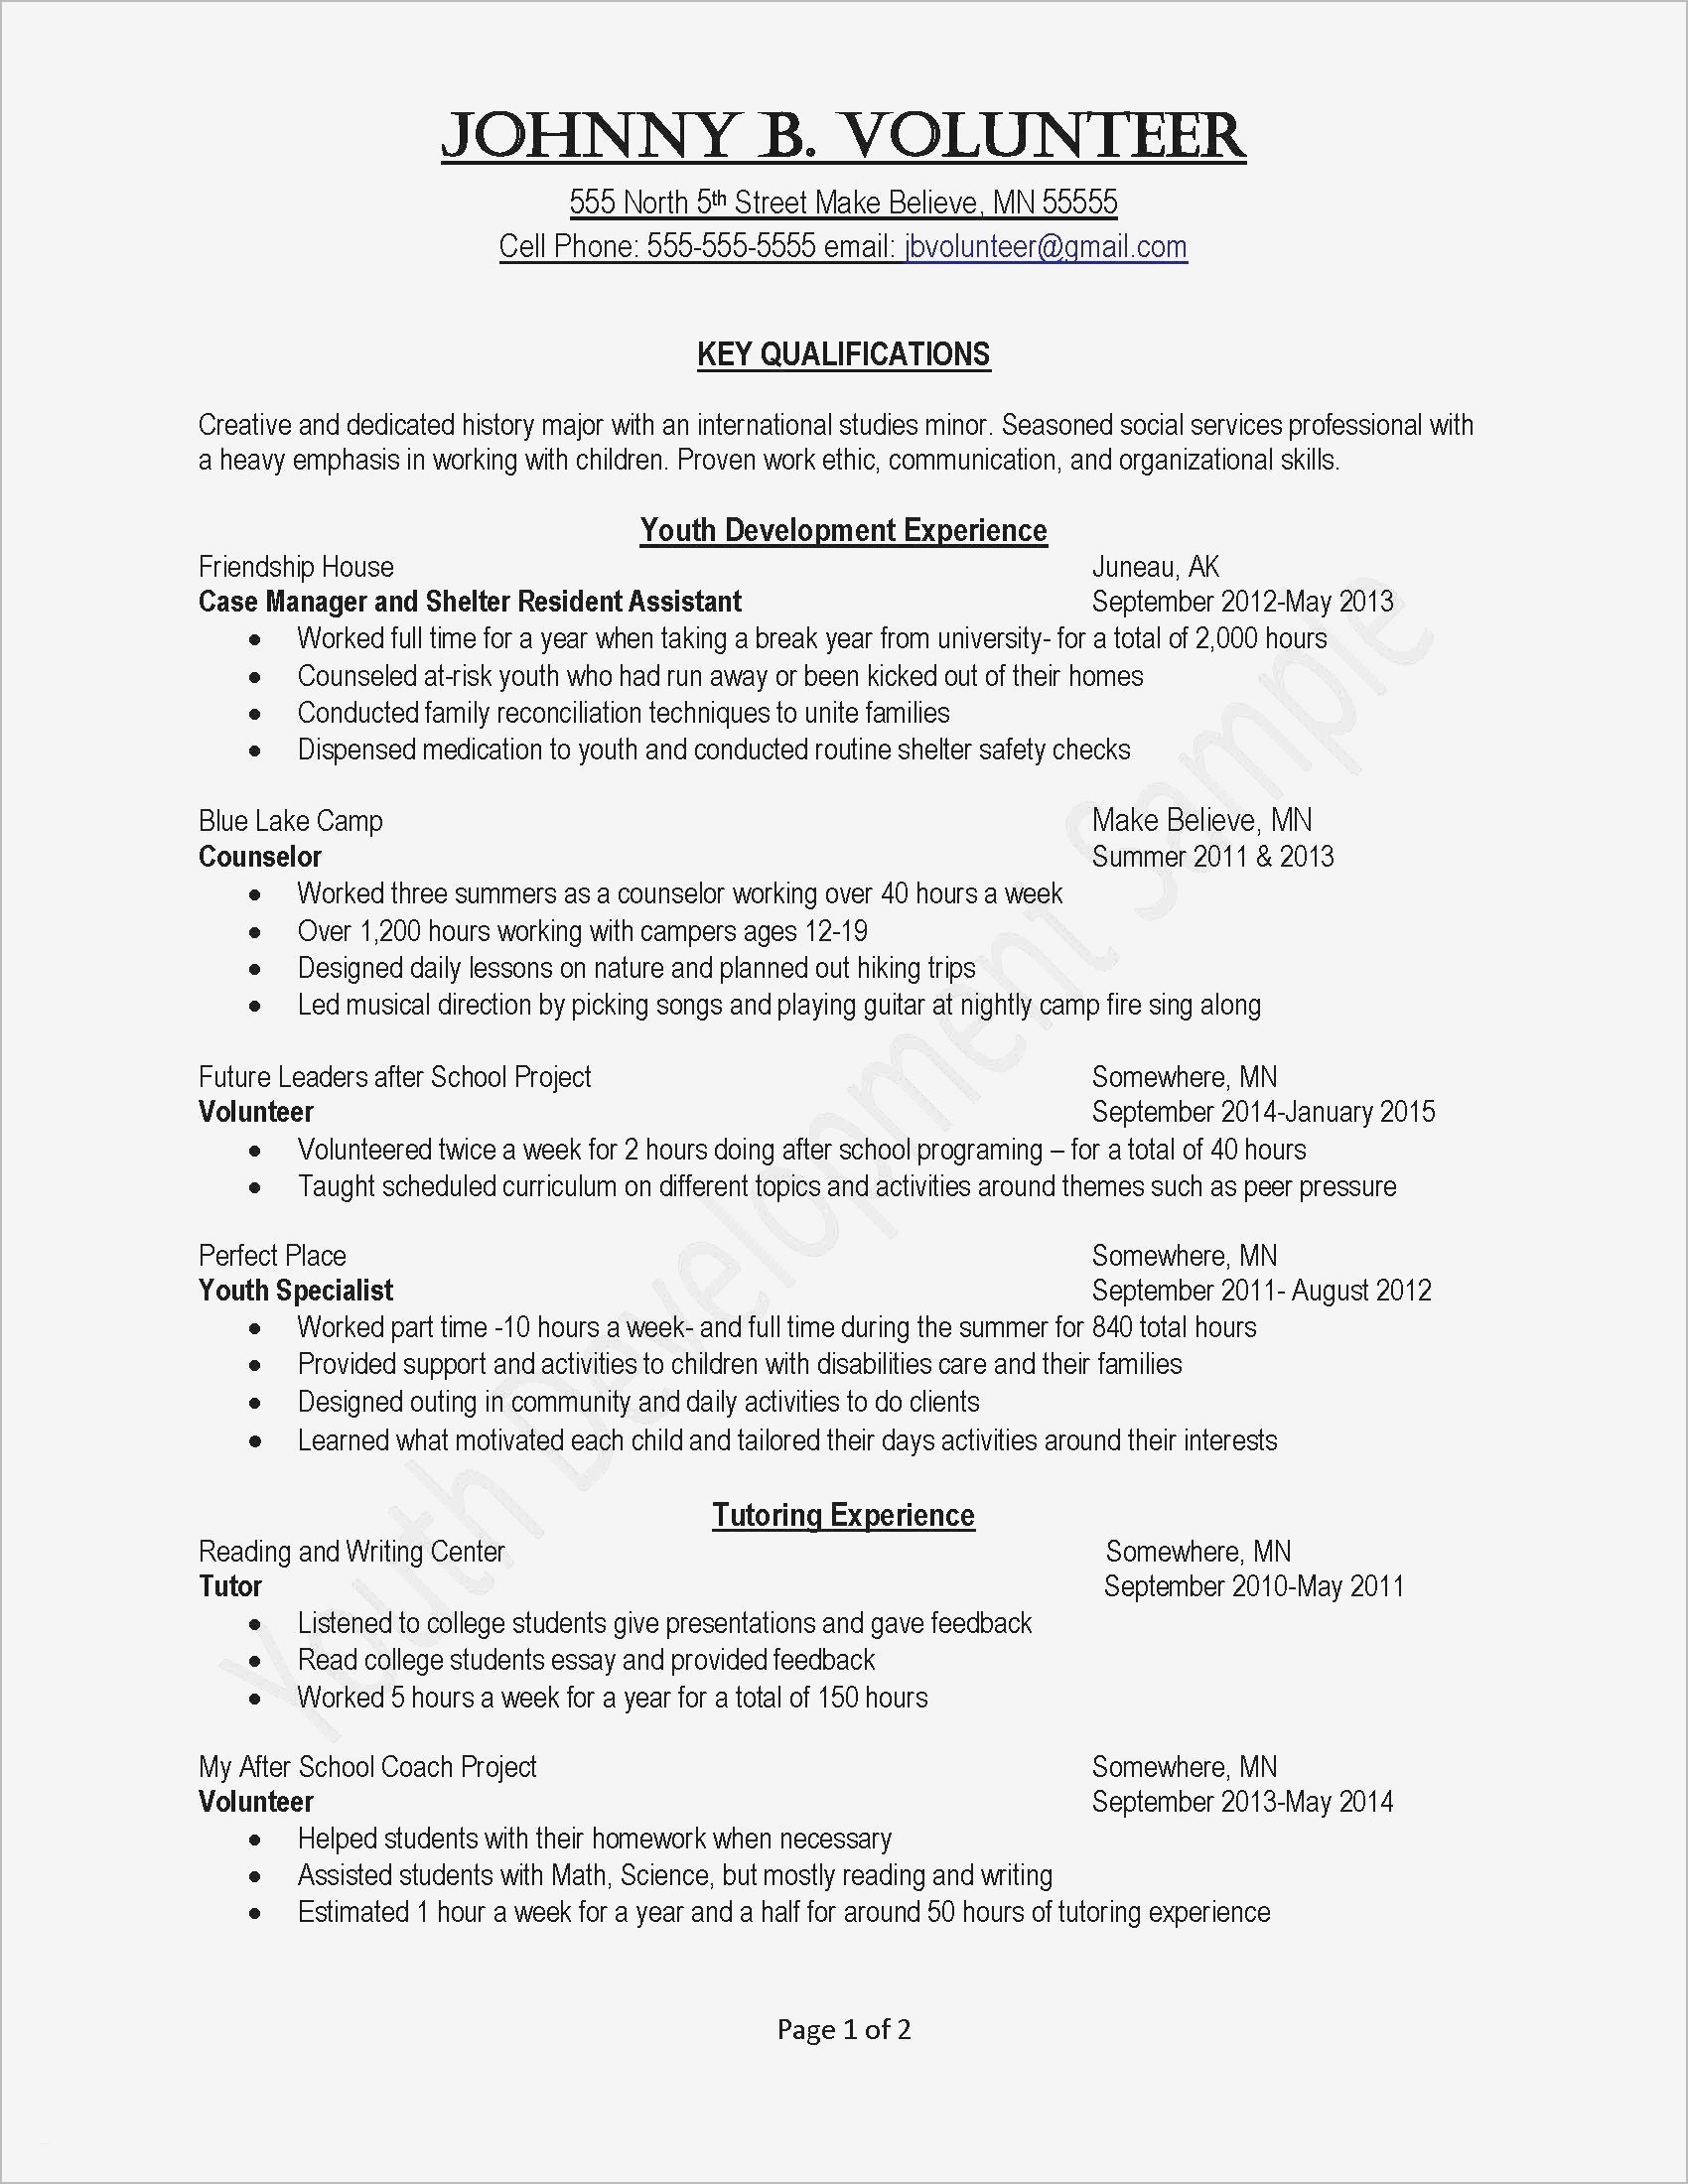 Resume Template for Letter Of Recommendation - Copy Resume Template Reference Job Fer Letter Template Us Copy Od